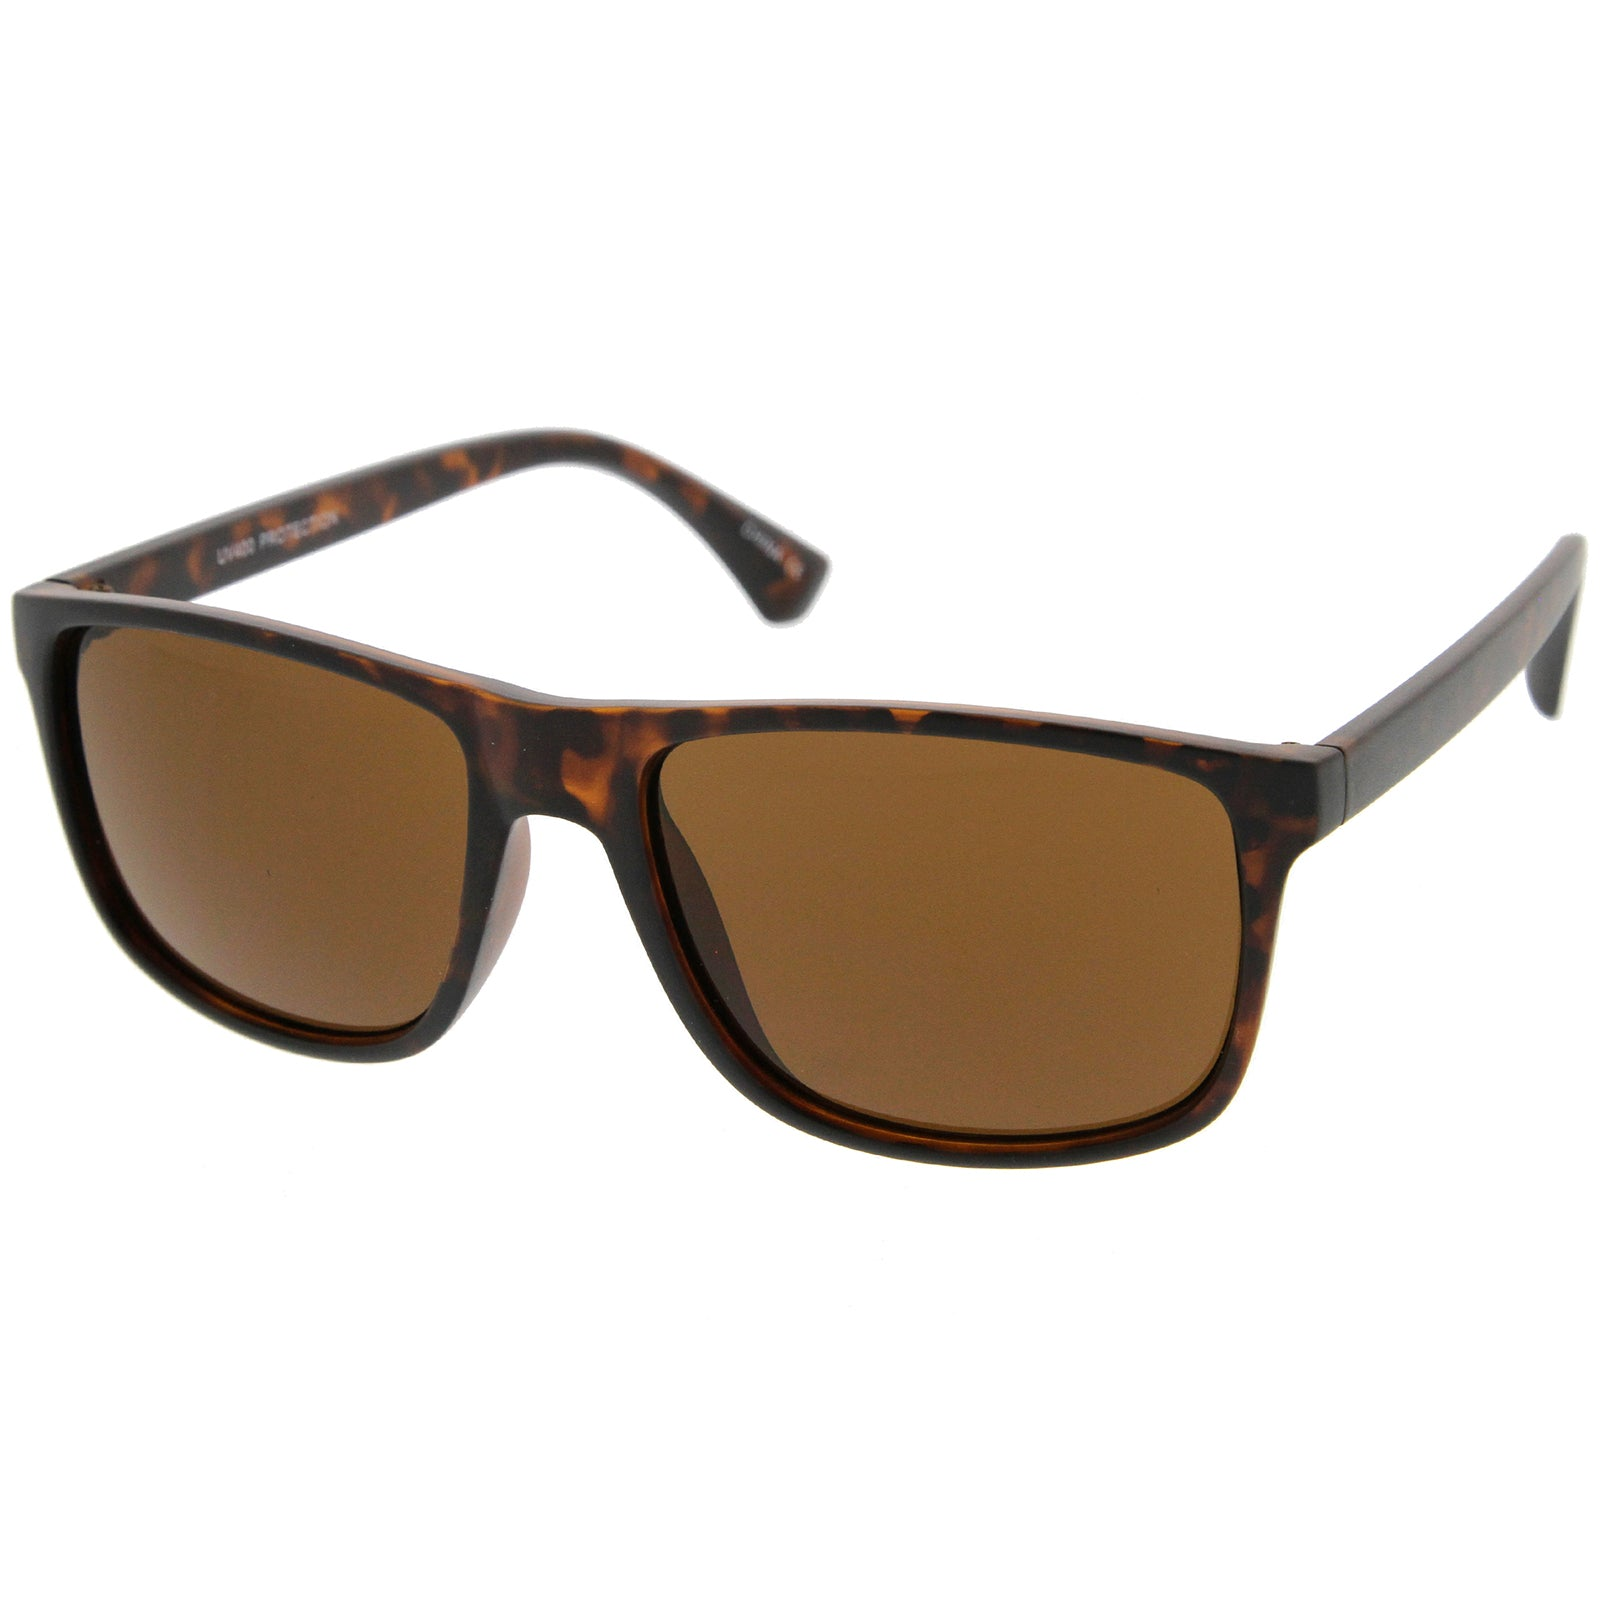 Modern Casual Lifestyle Flat Top Rectangle Lens Horn Rimmed Sunglasses 56mm - sunglass.la - 2